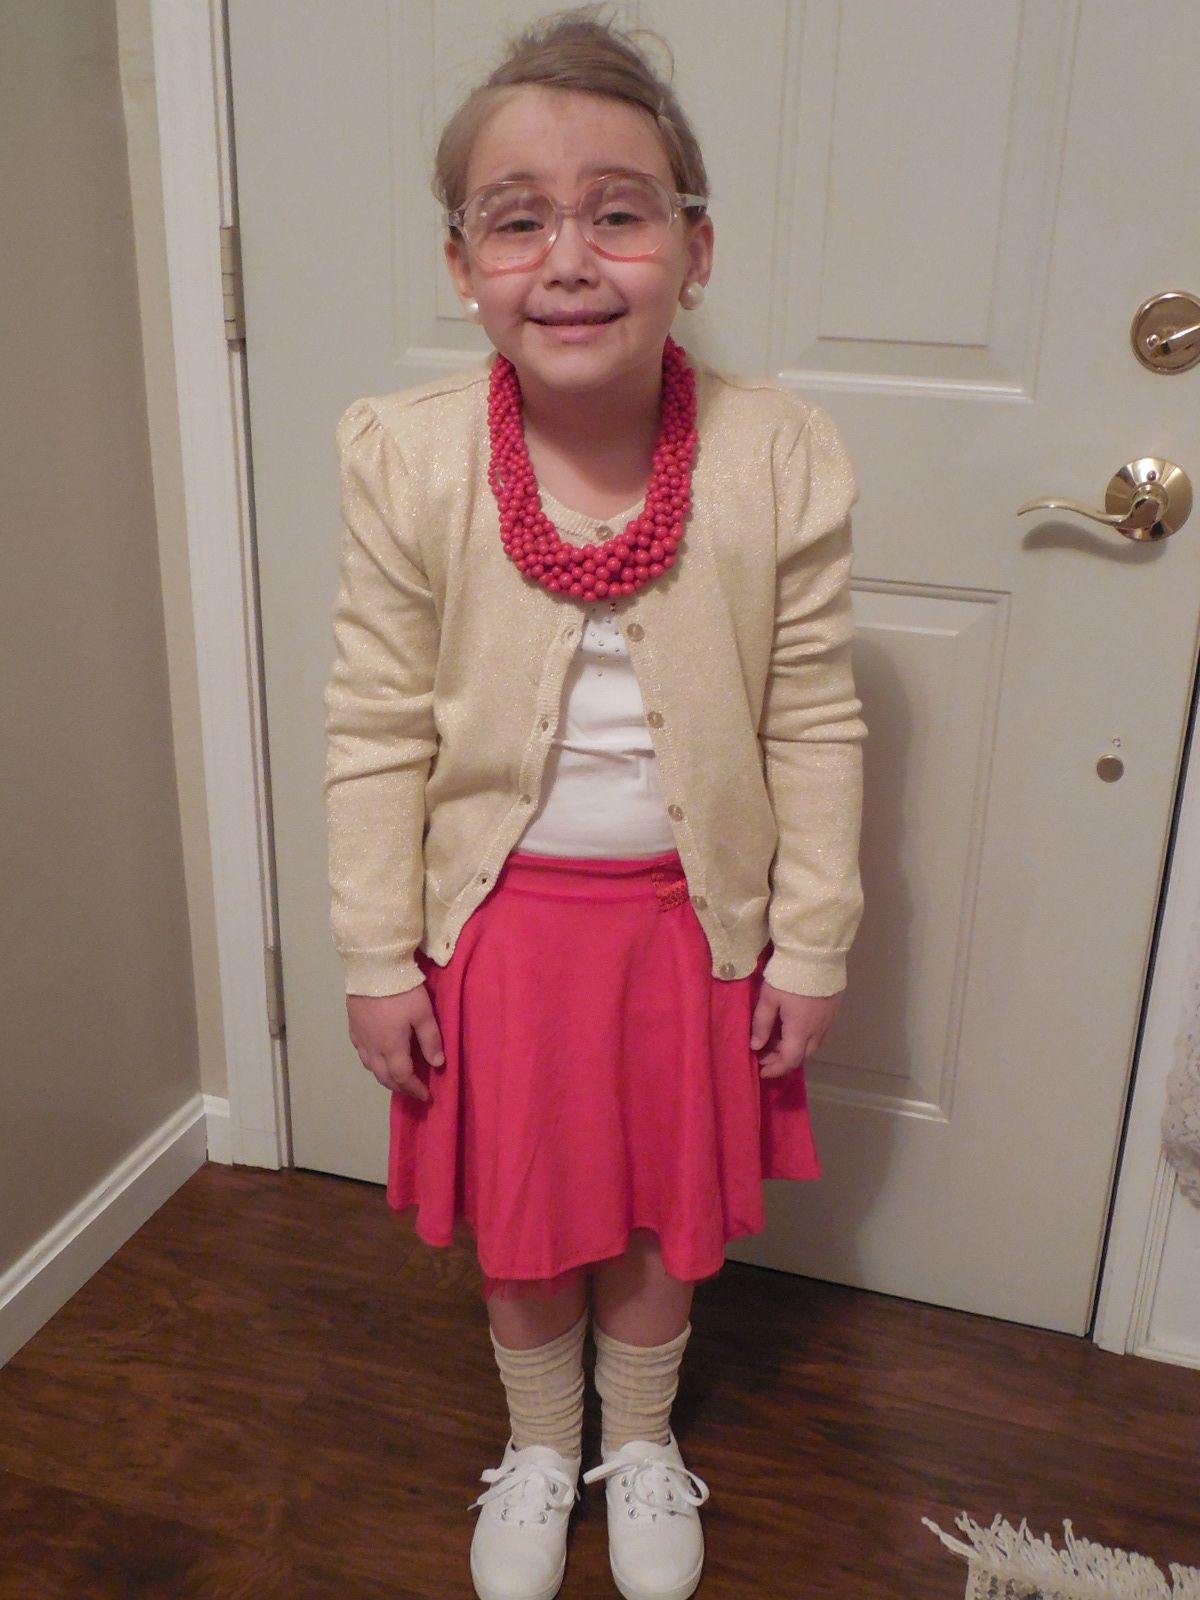 100th Day of School Little old lady (With images) School